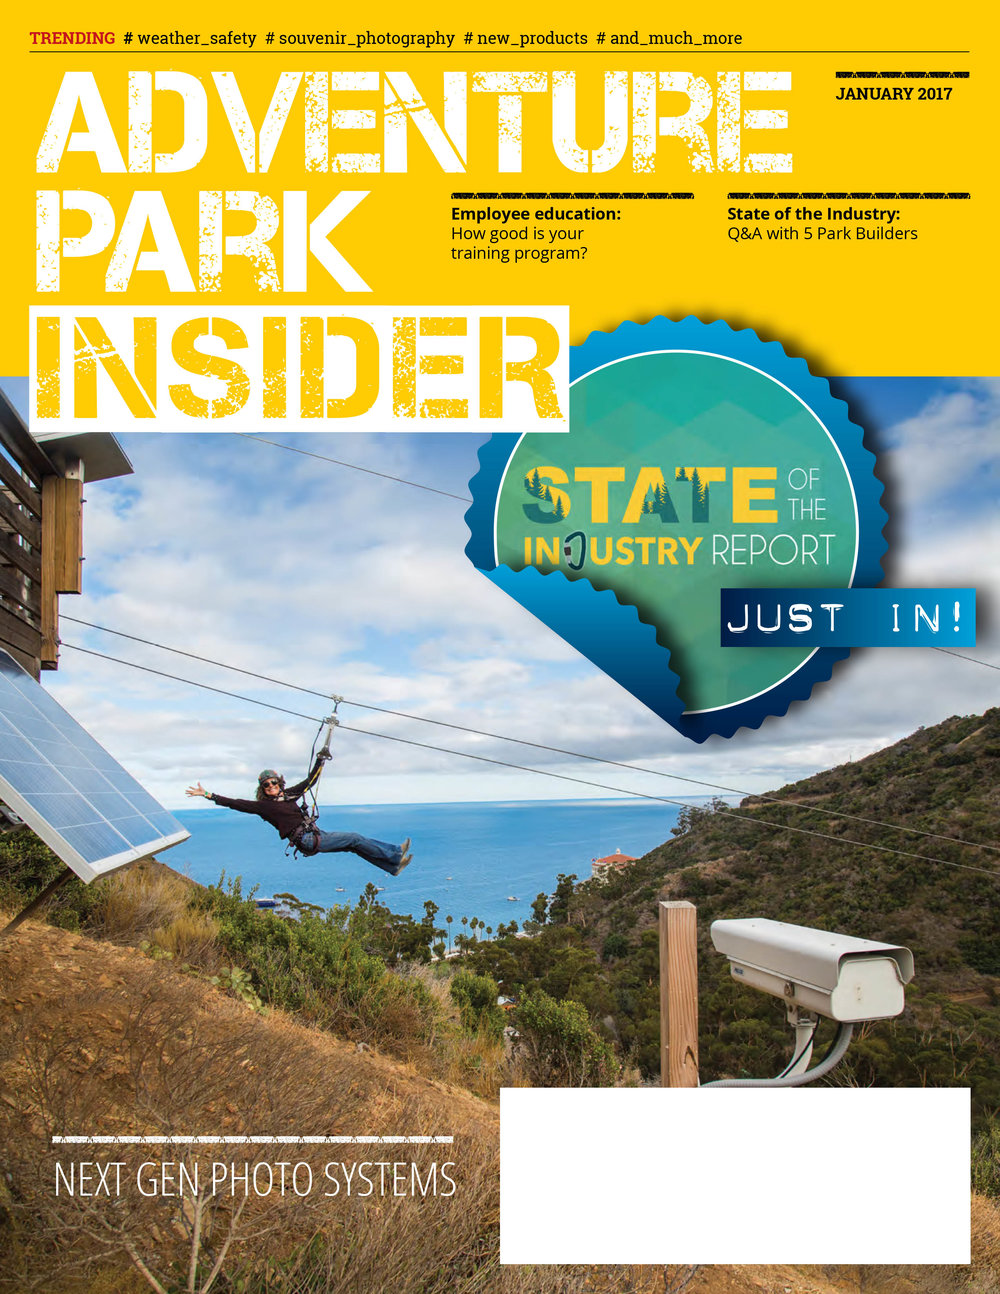 As seen in Adventure Park Insider.